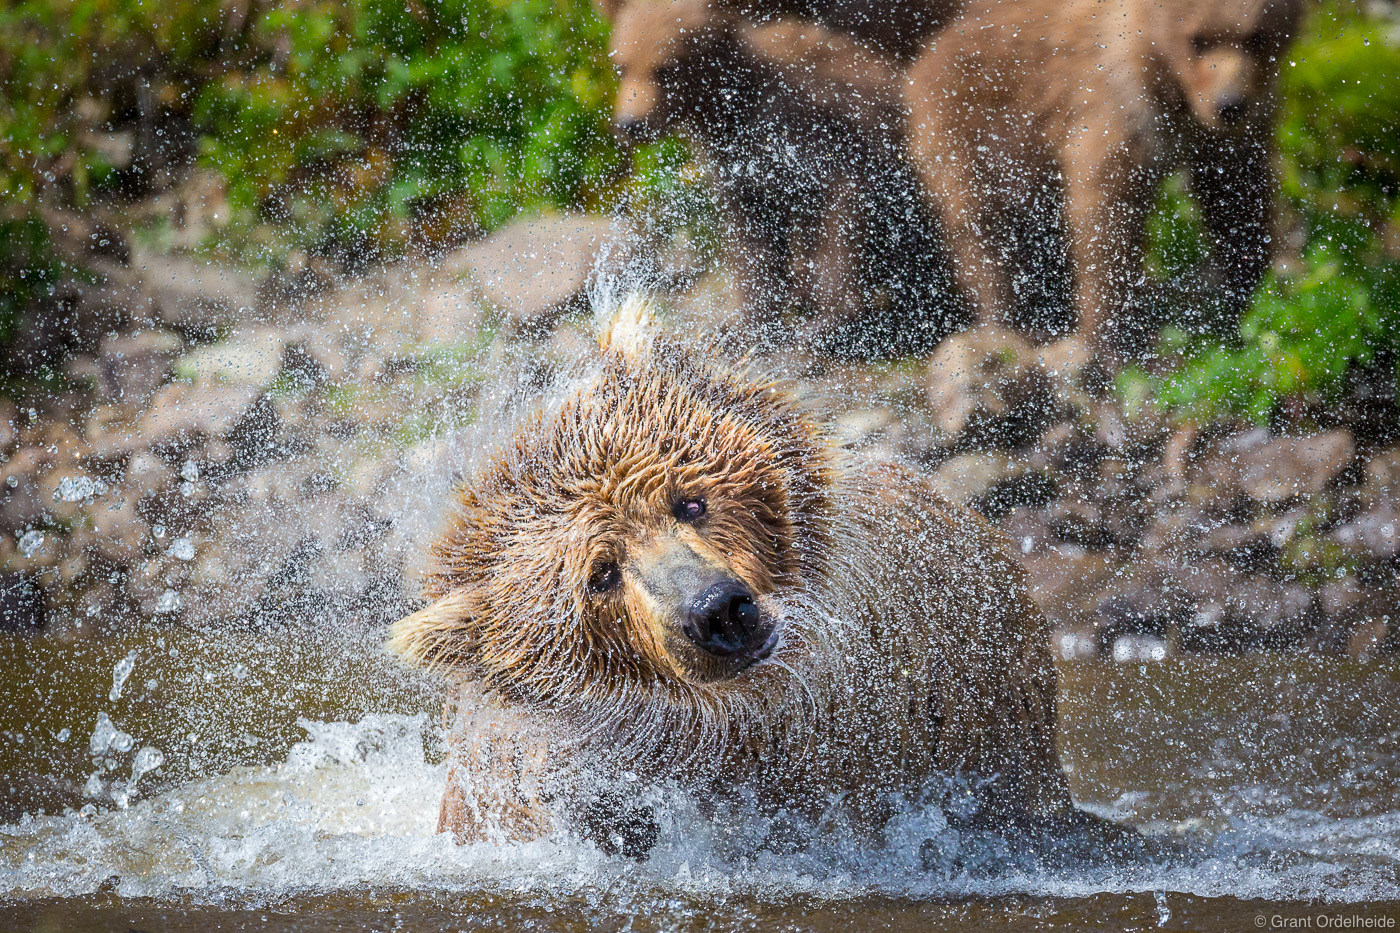 A mother brown bear shakes off water after diving forsalmon asher cubs watch in the background.